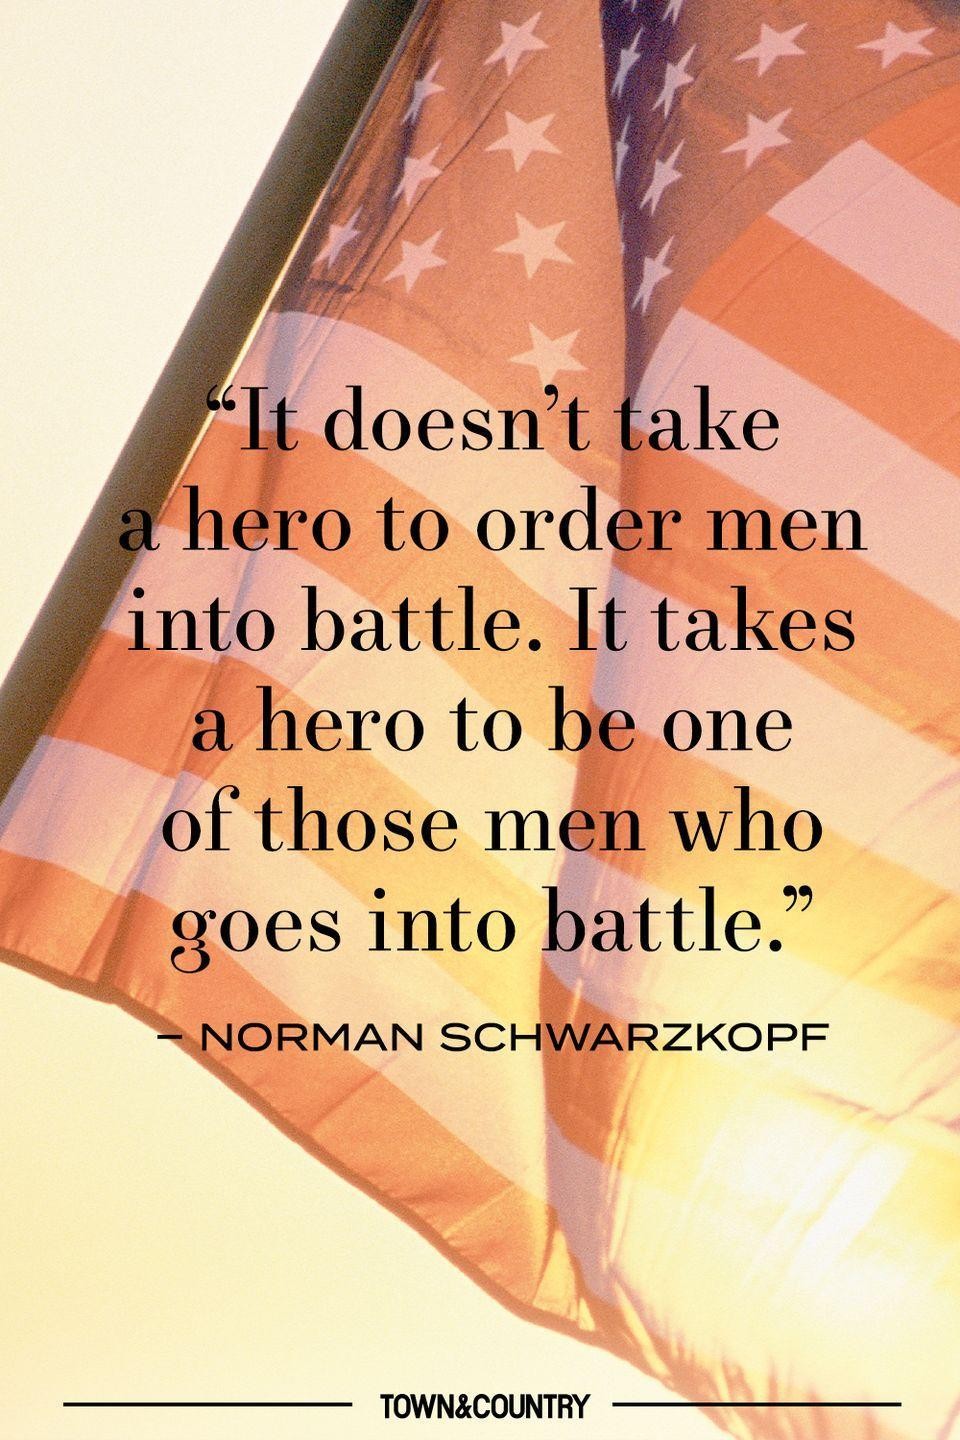 "<p>""It doesn't take a hero to order men into battle. It takes a hero to be one of those men who goes into battle."" </p><p>– Norman Schwarzkopf </p>"